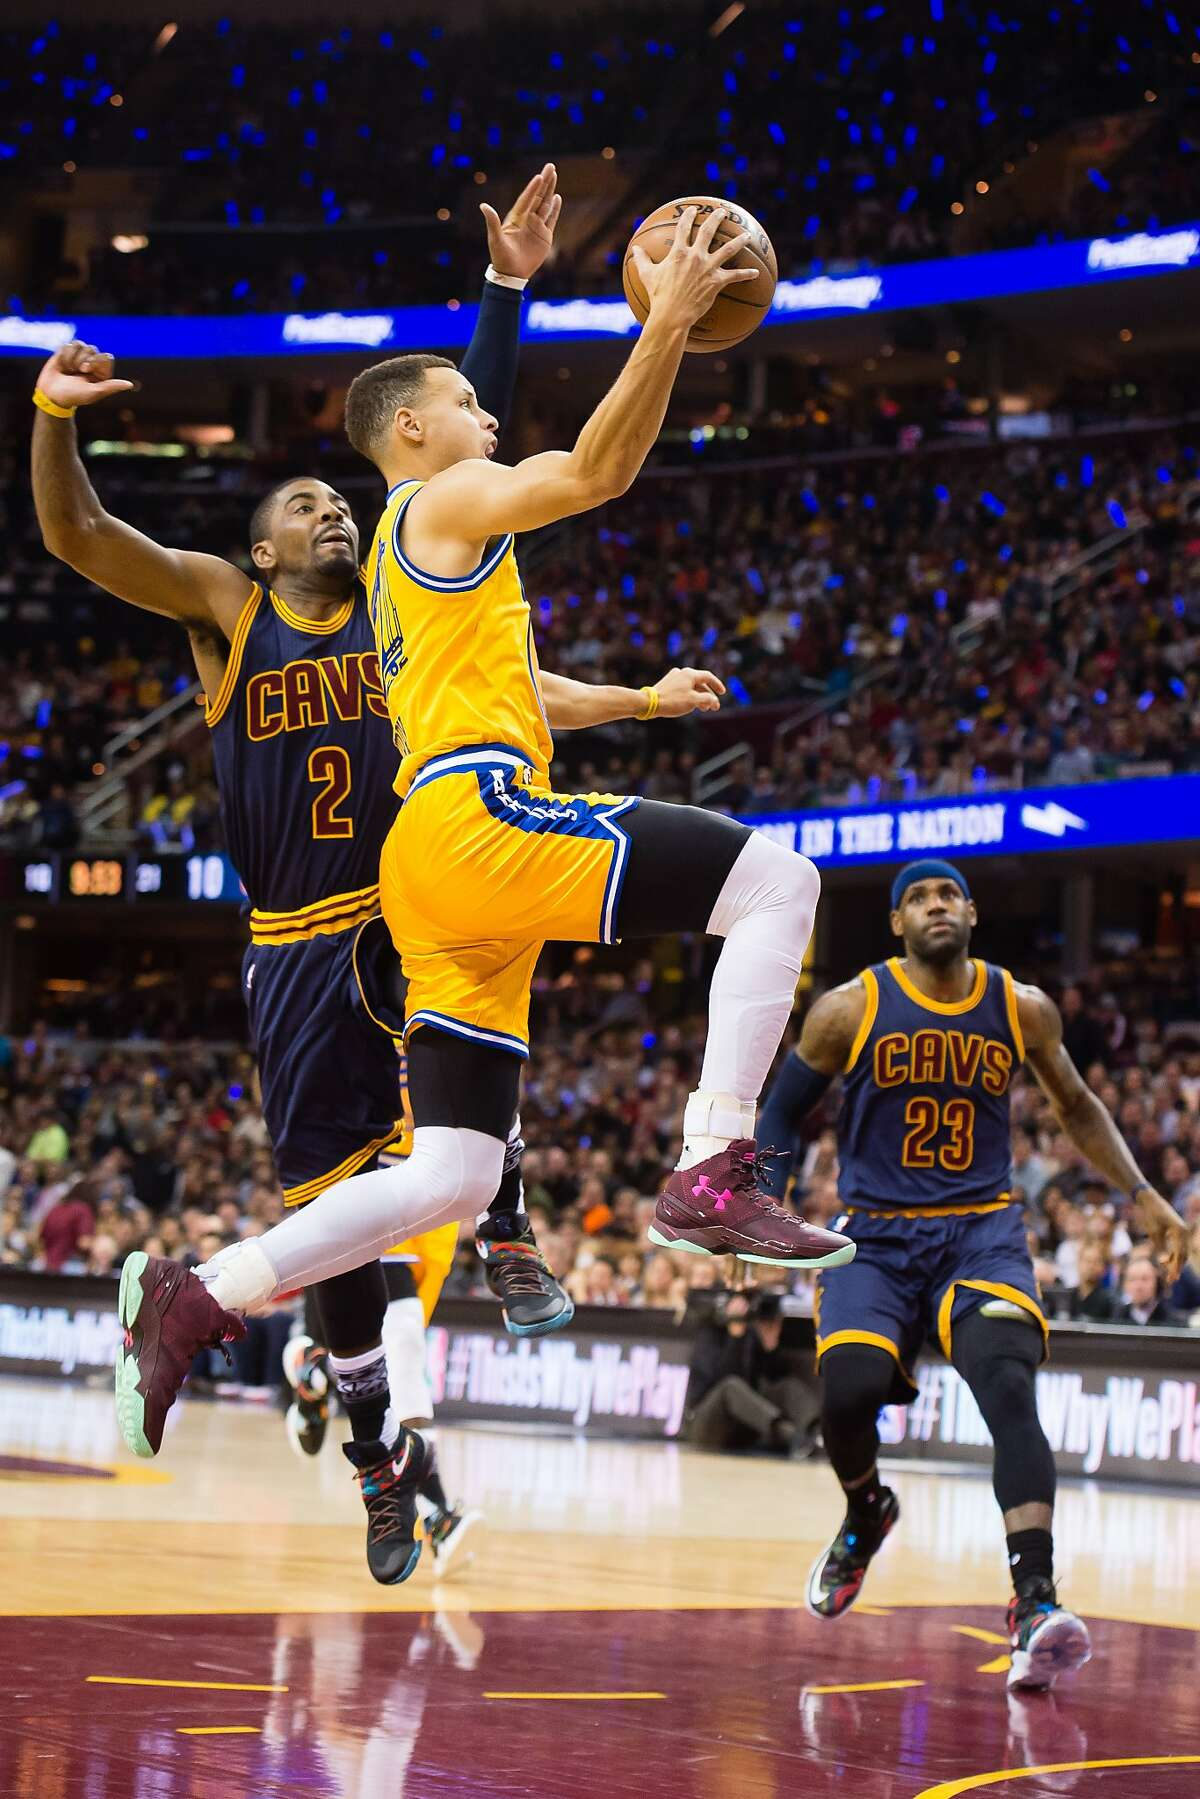 Stephen Curry #30 of the Golden State Warriors shoots over Kyrie Irving #2 and LeBron James #23 of the Cleveland Cavaliers during the first half at Quicken Loans Arena on January 18, 2016 in Cleveland, Ohio.